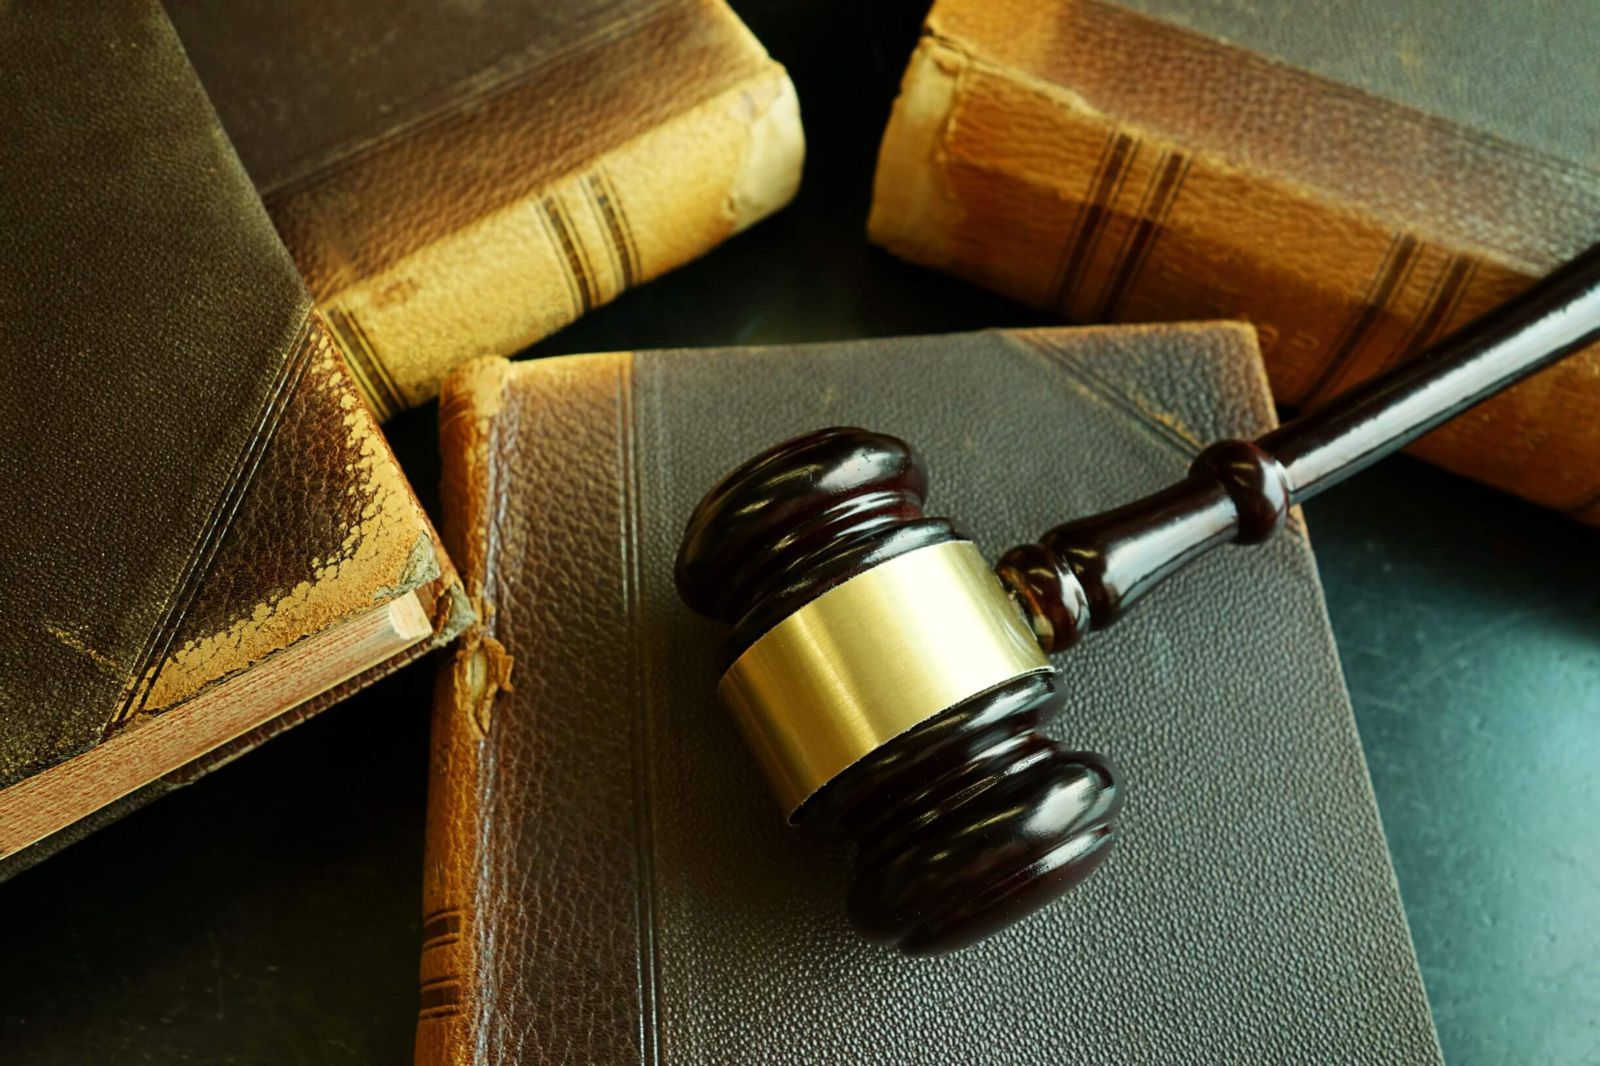 Consumer Protection Act Claim